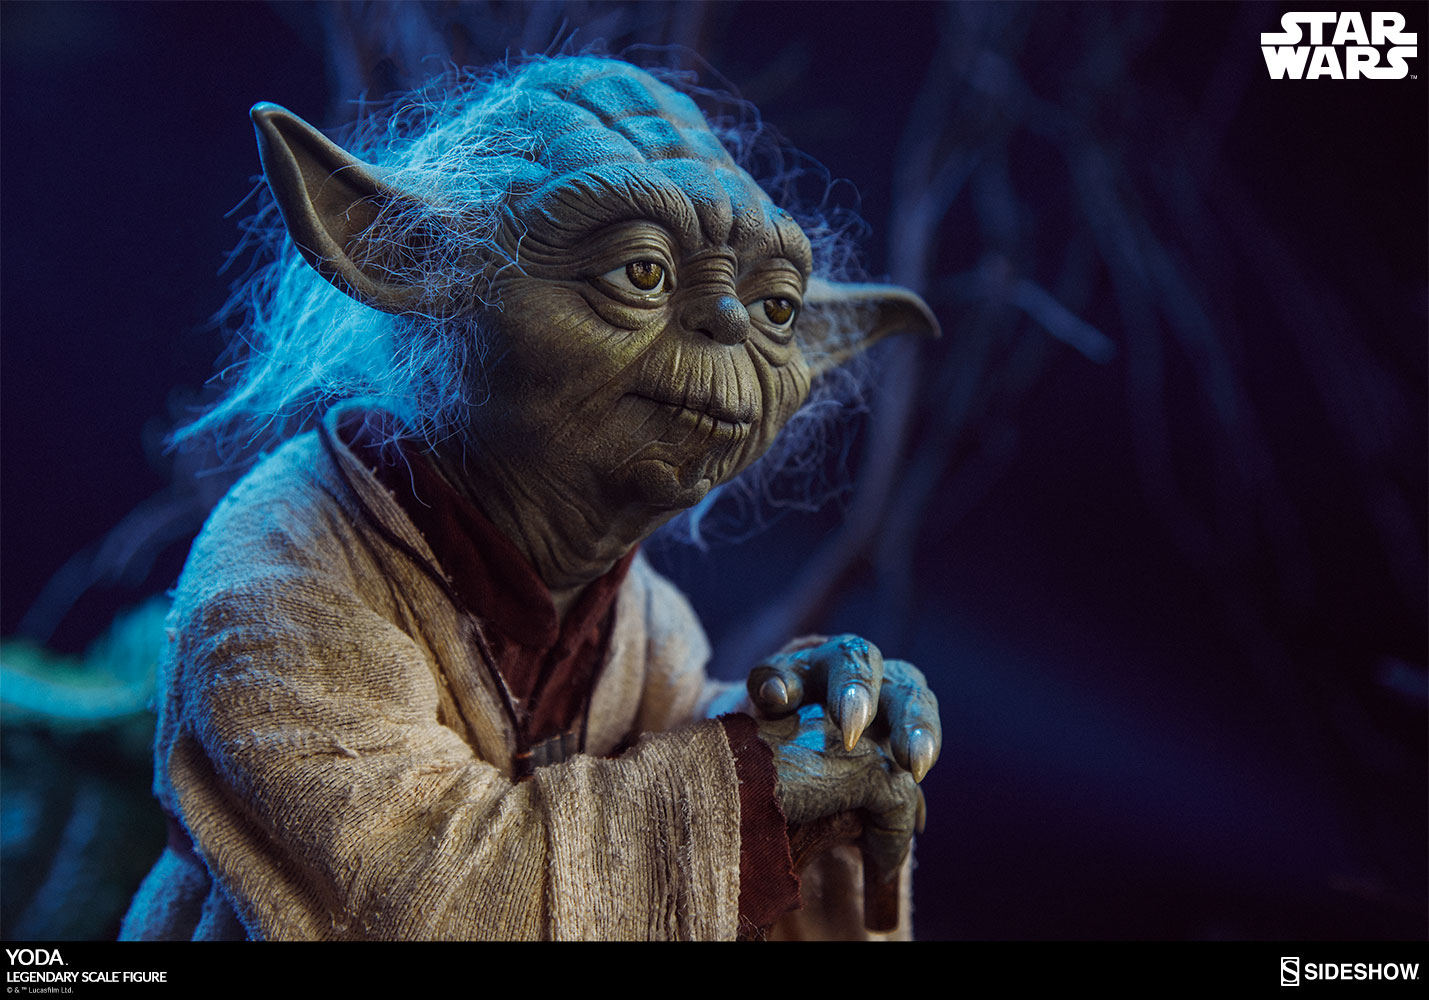 Star Wars Yoda Legendary Scale Tm Figure By Sideshow Collec